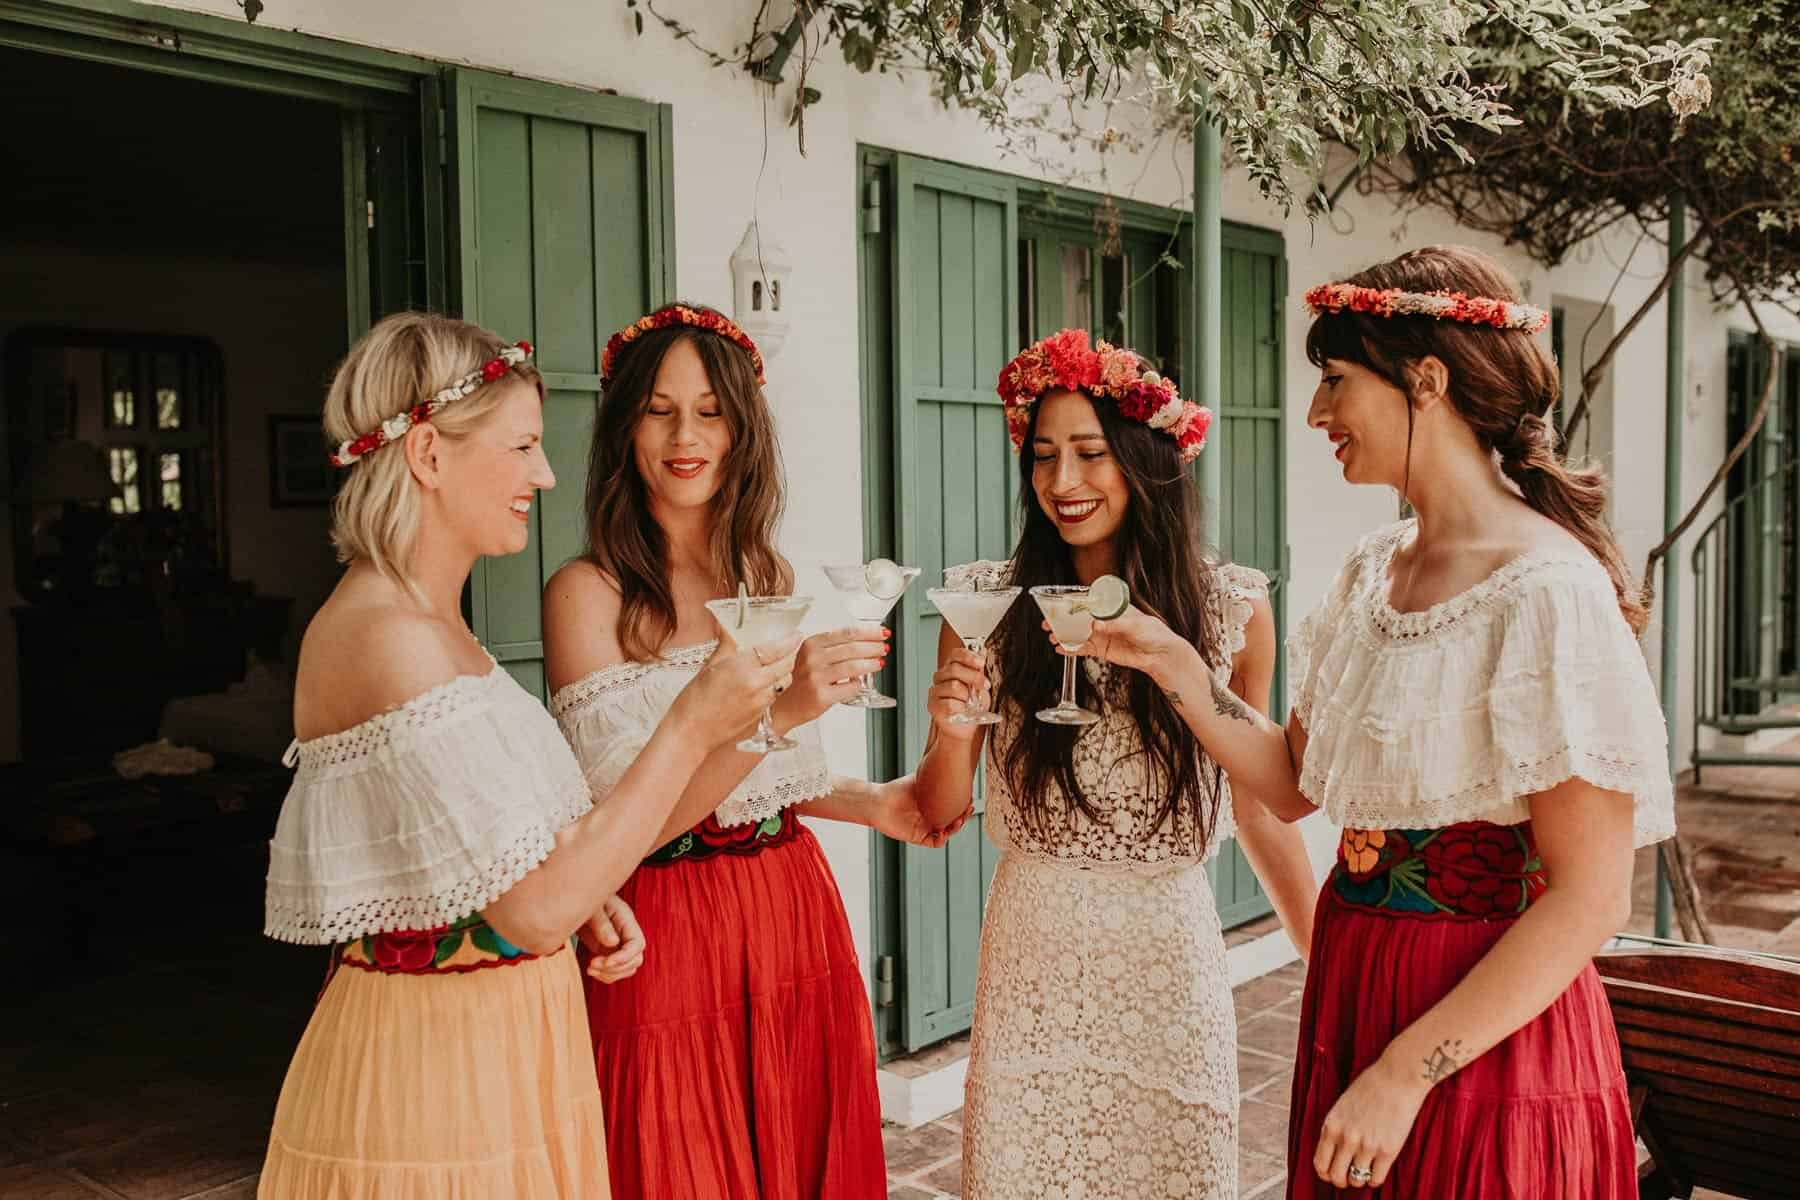 boho bride and mismatched bridesmaids with flower crowns